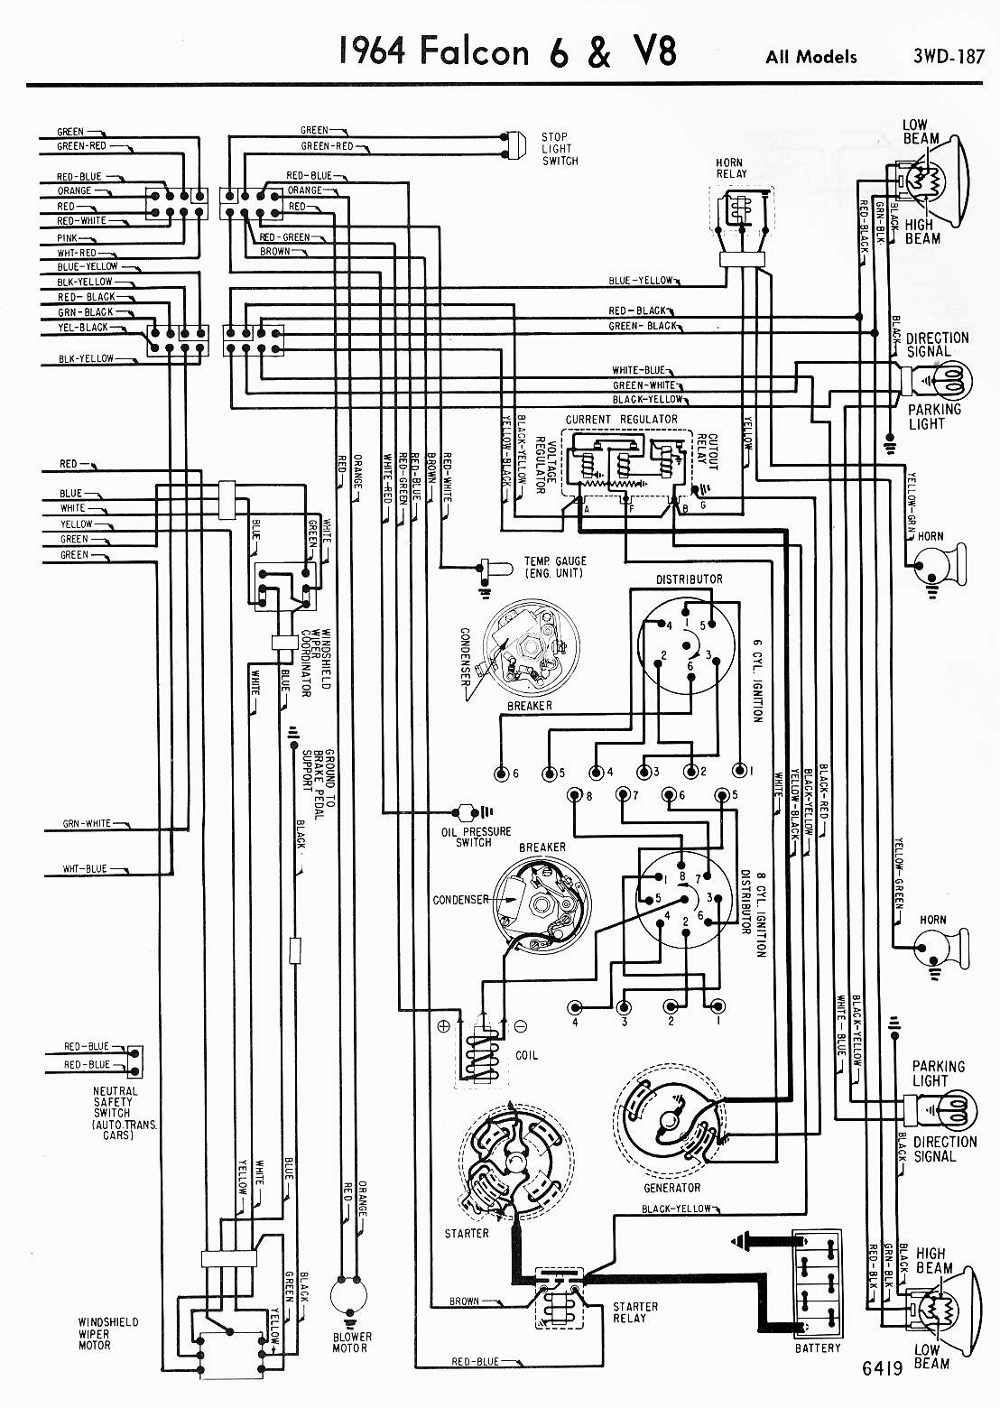 Wiring Diagram 1964 Ford Futura Library Econoline Van Falcon Diagrams Of 6 And V8 All